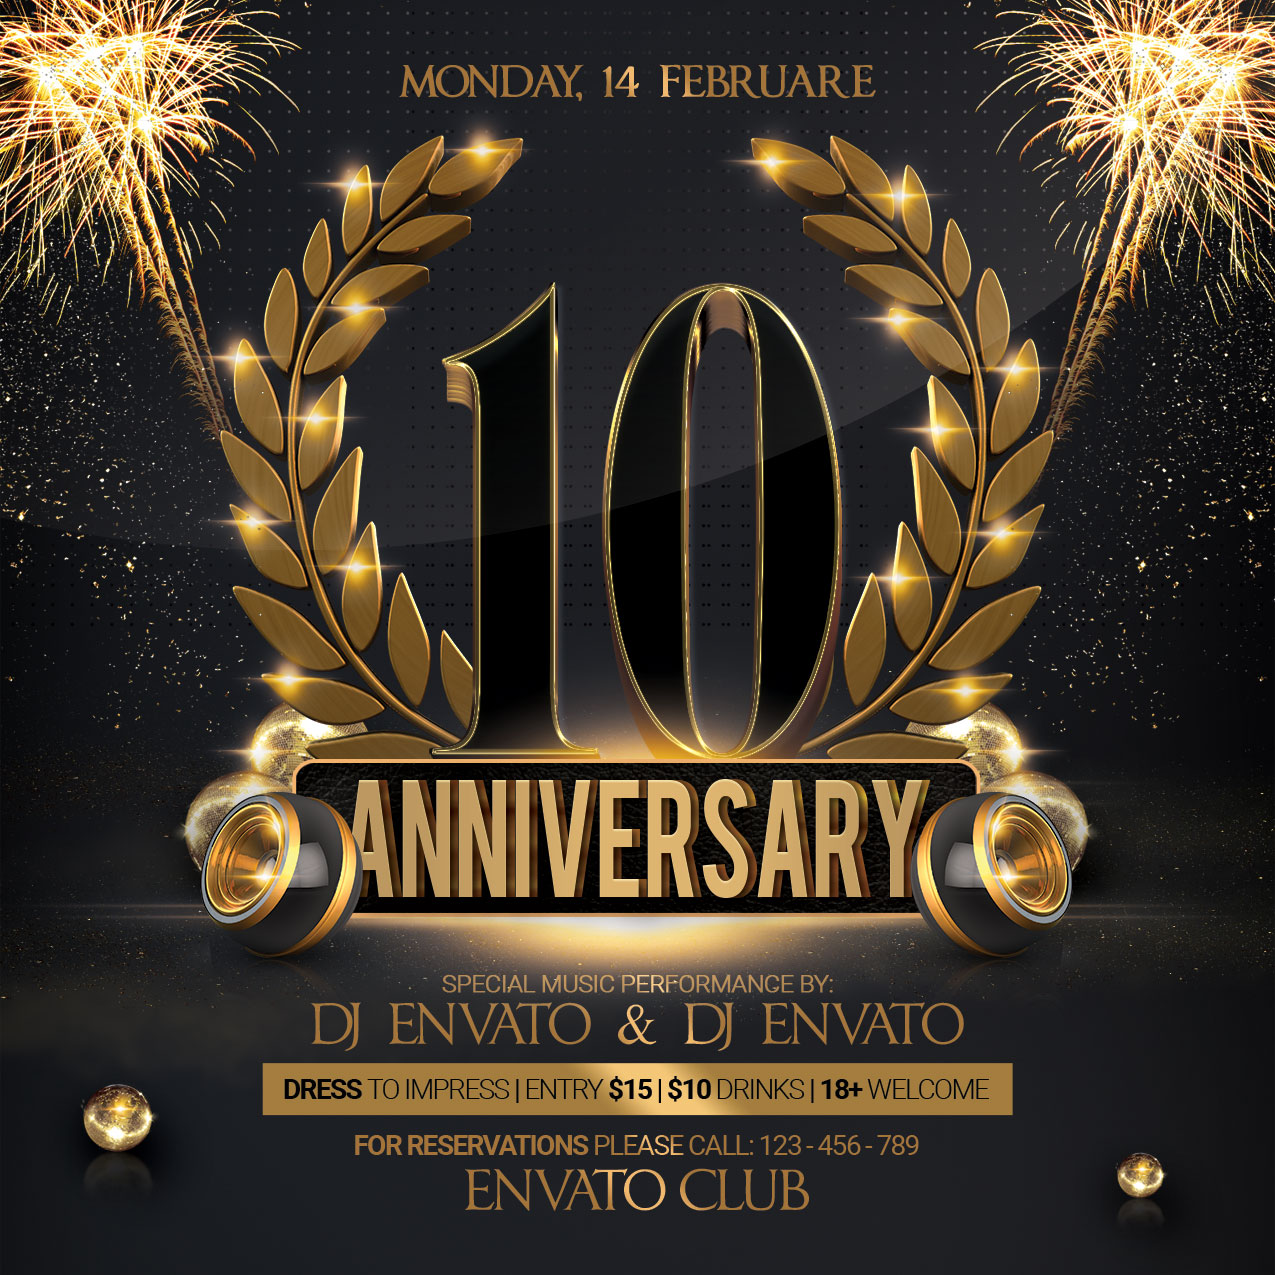 Anniversary Party Flyer example image 4